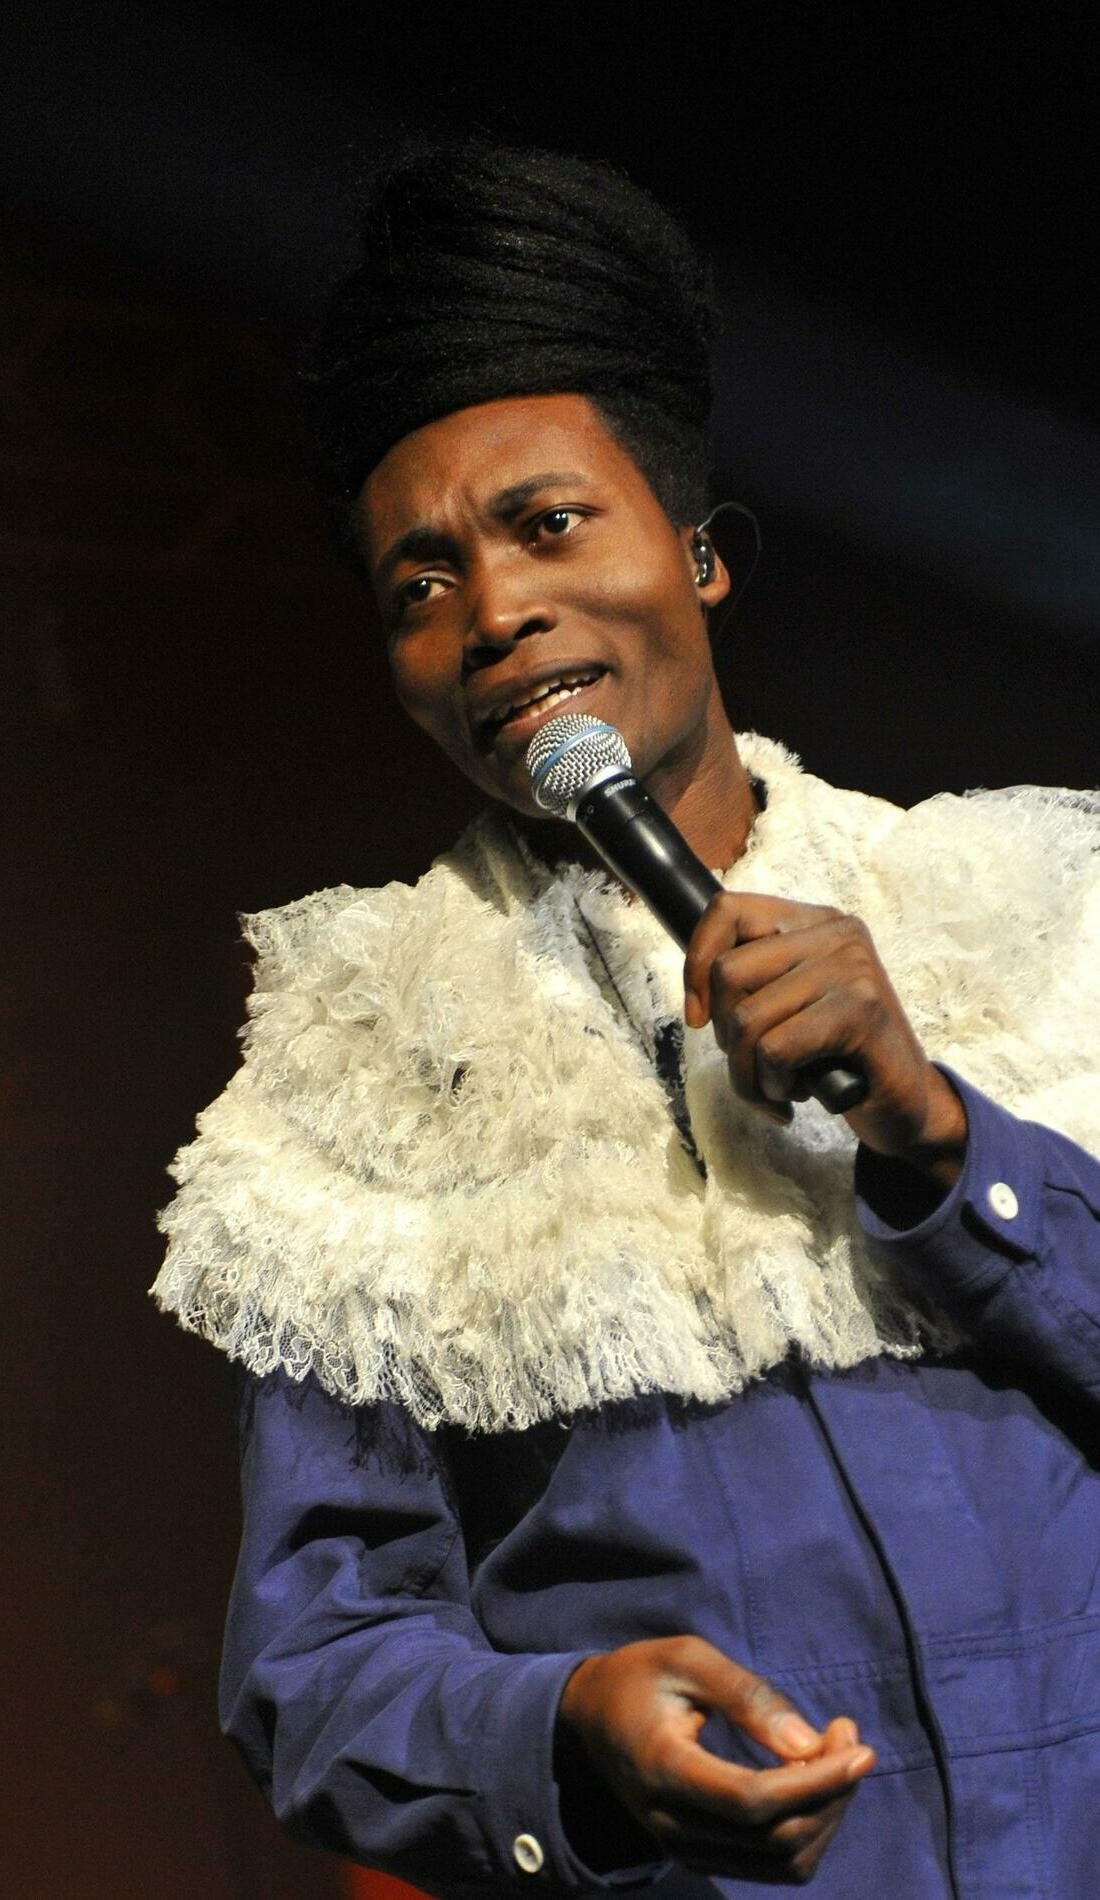 A Benjamin Clementine live event